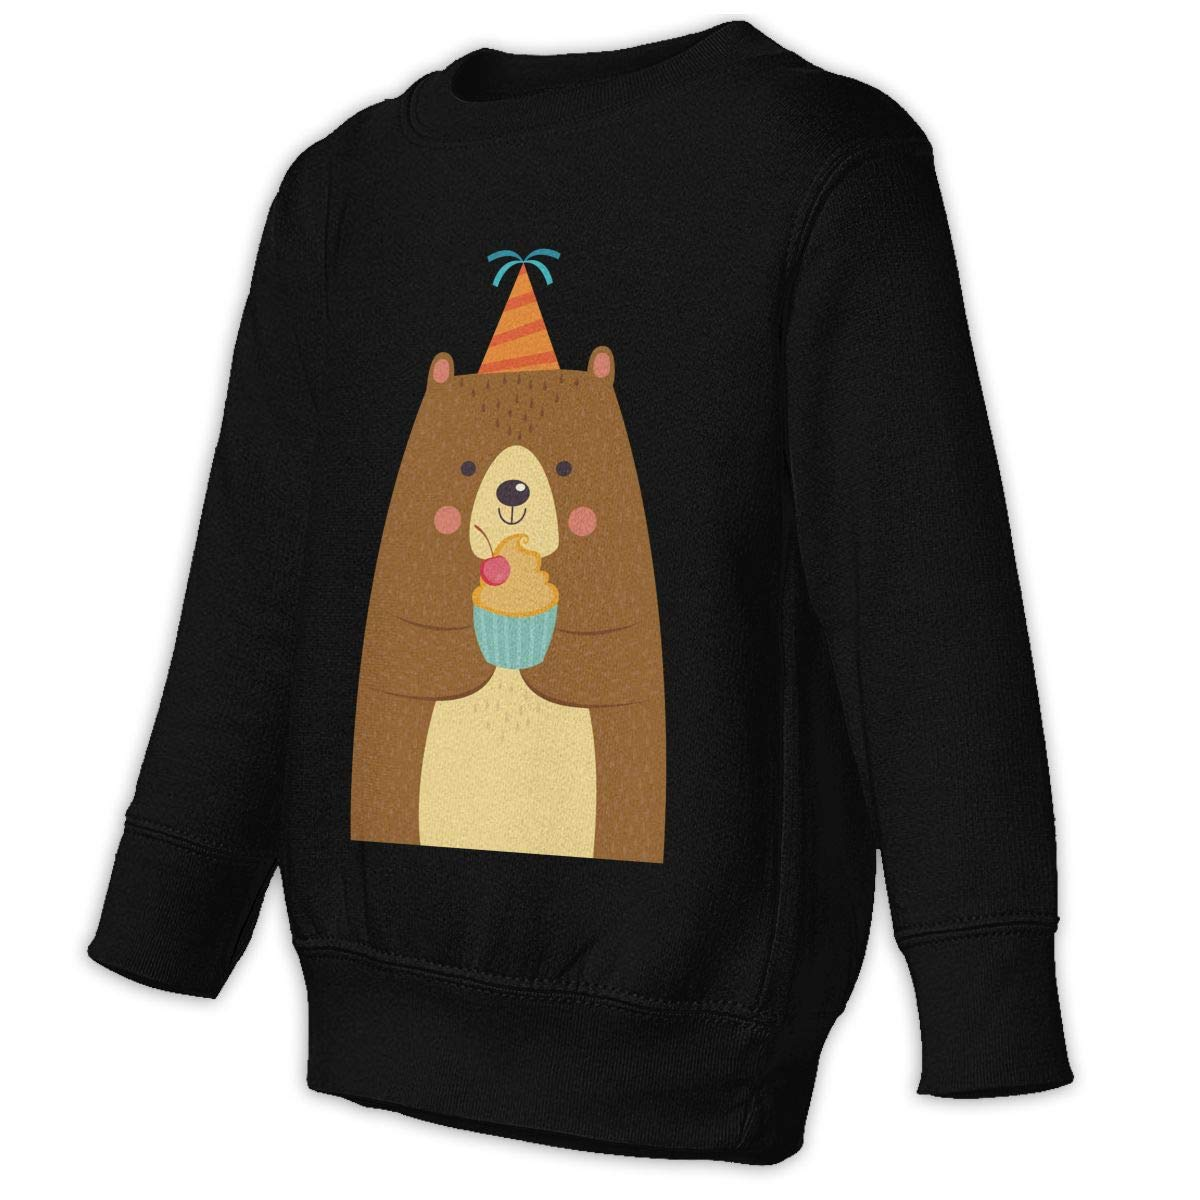 Fleece Pull Over Sweatshirt for Boys Girls Kids Youth Cute Brown Bear with Cake Unisex Toddler Hoodies